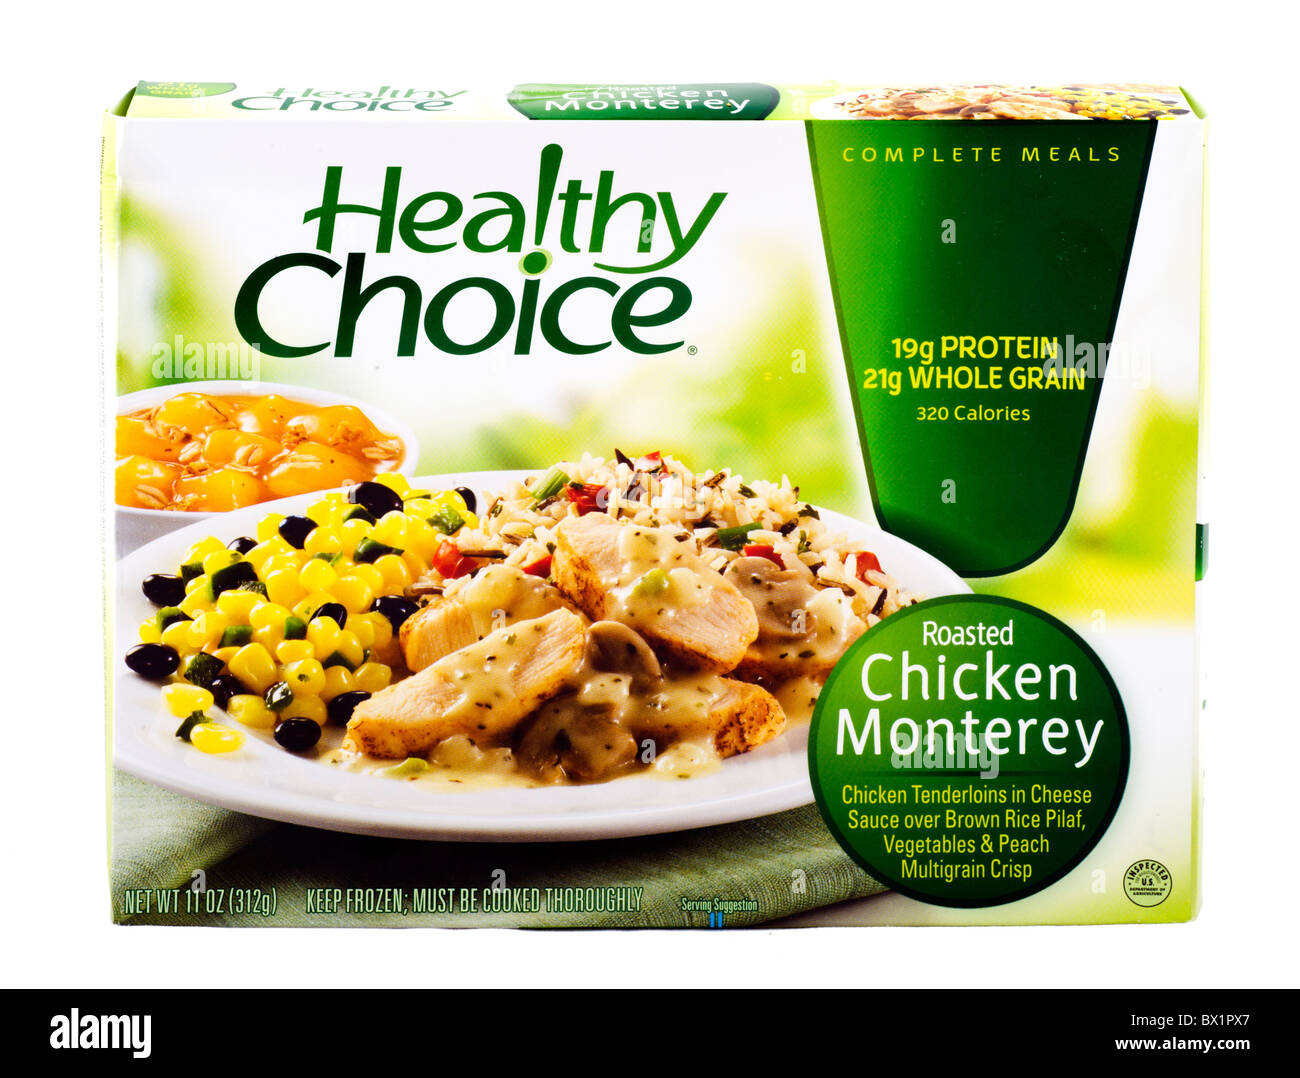 Healthy Choice Roasted Chicken Monterrey frozen ready meal, USA - Stock Image